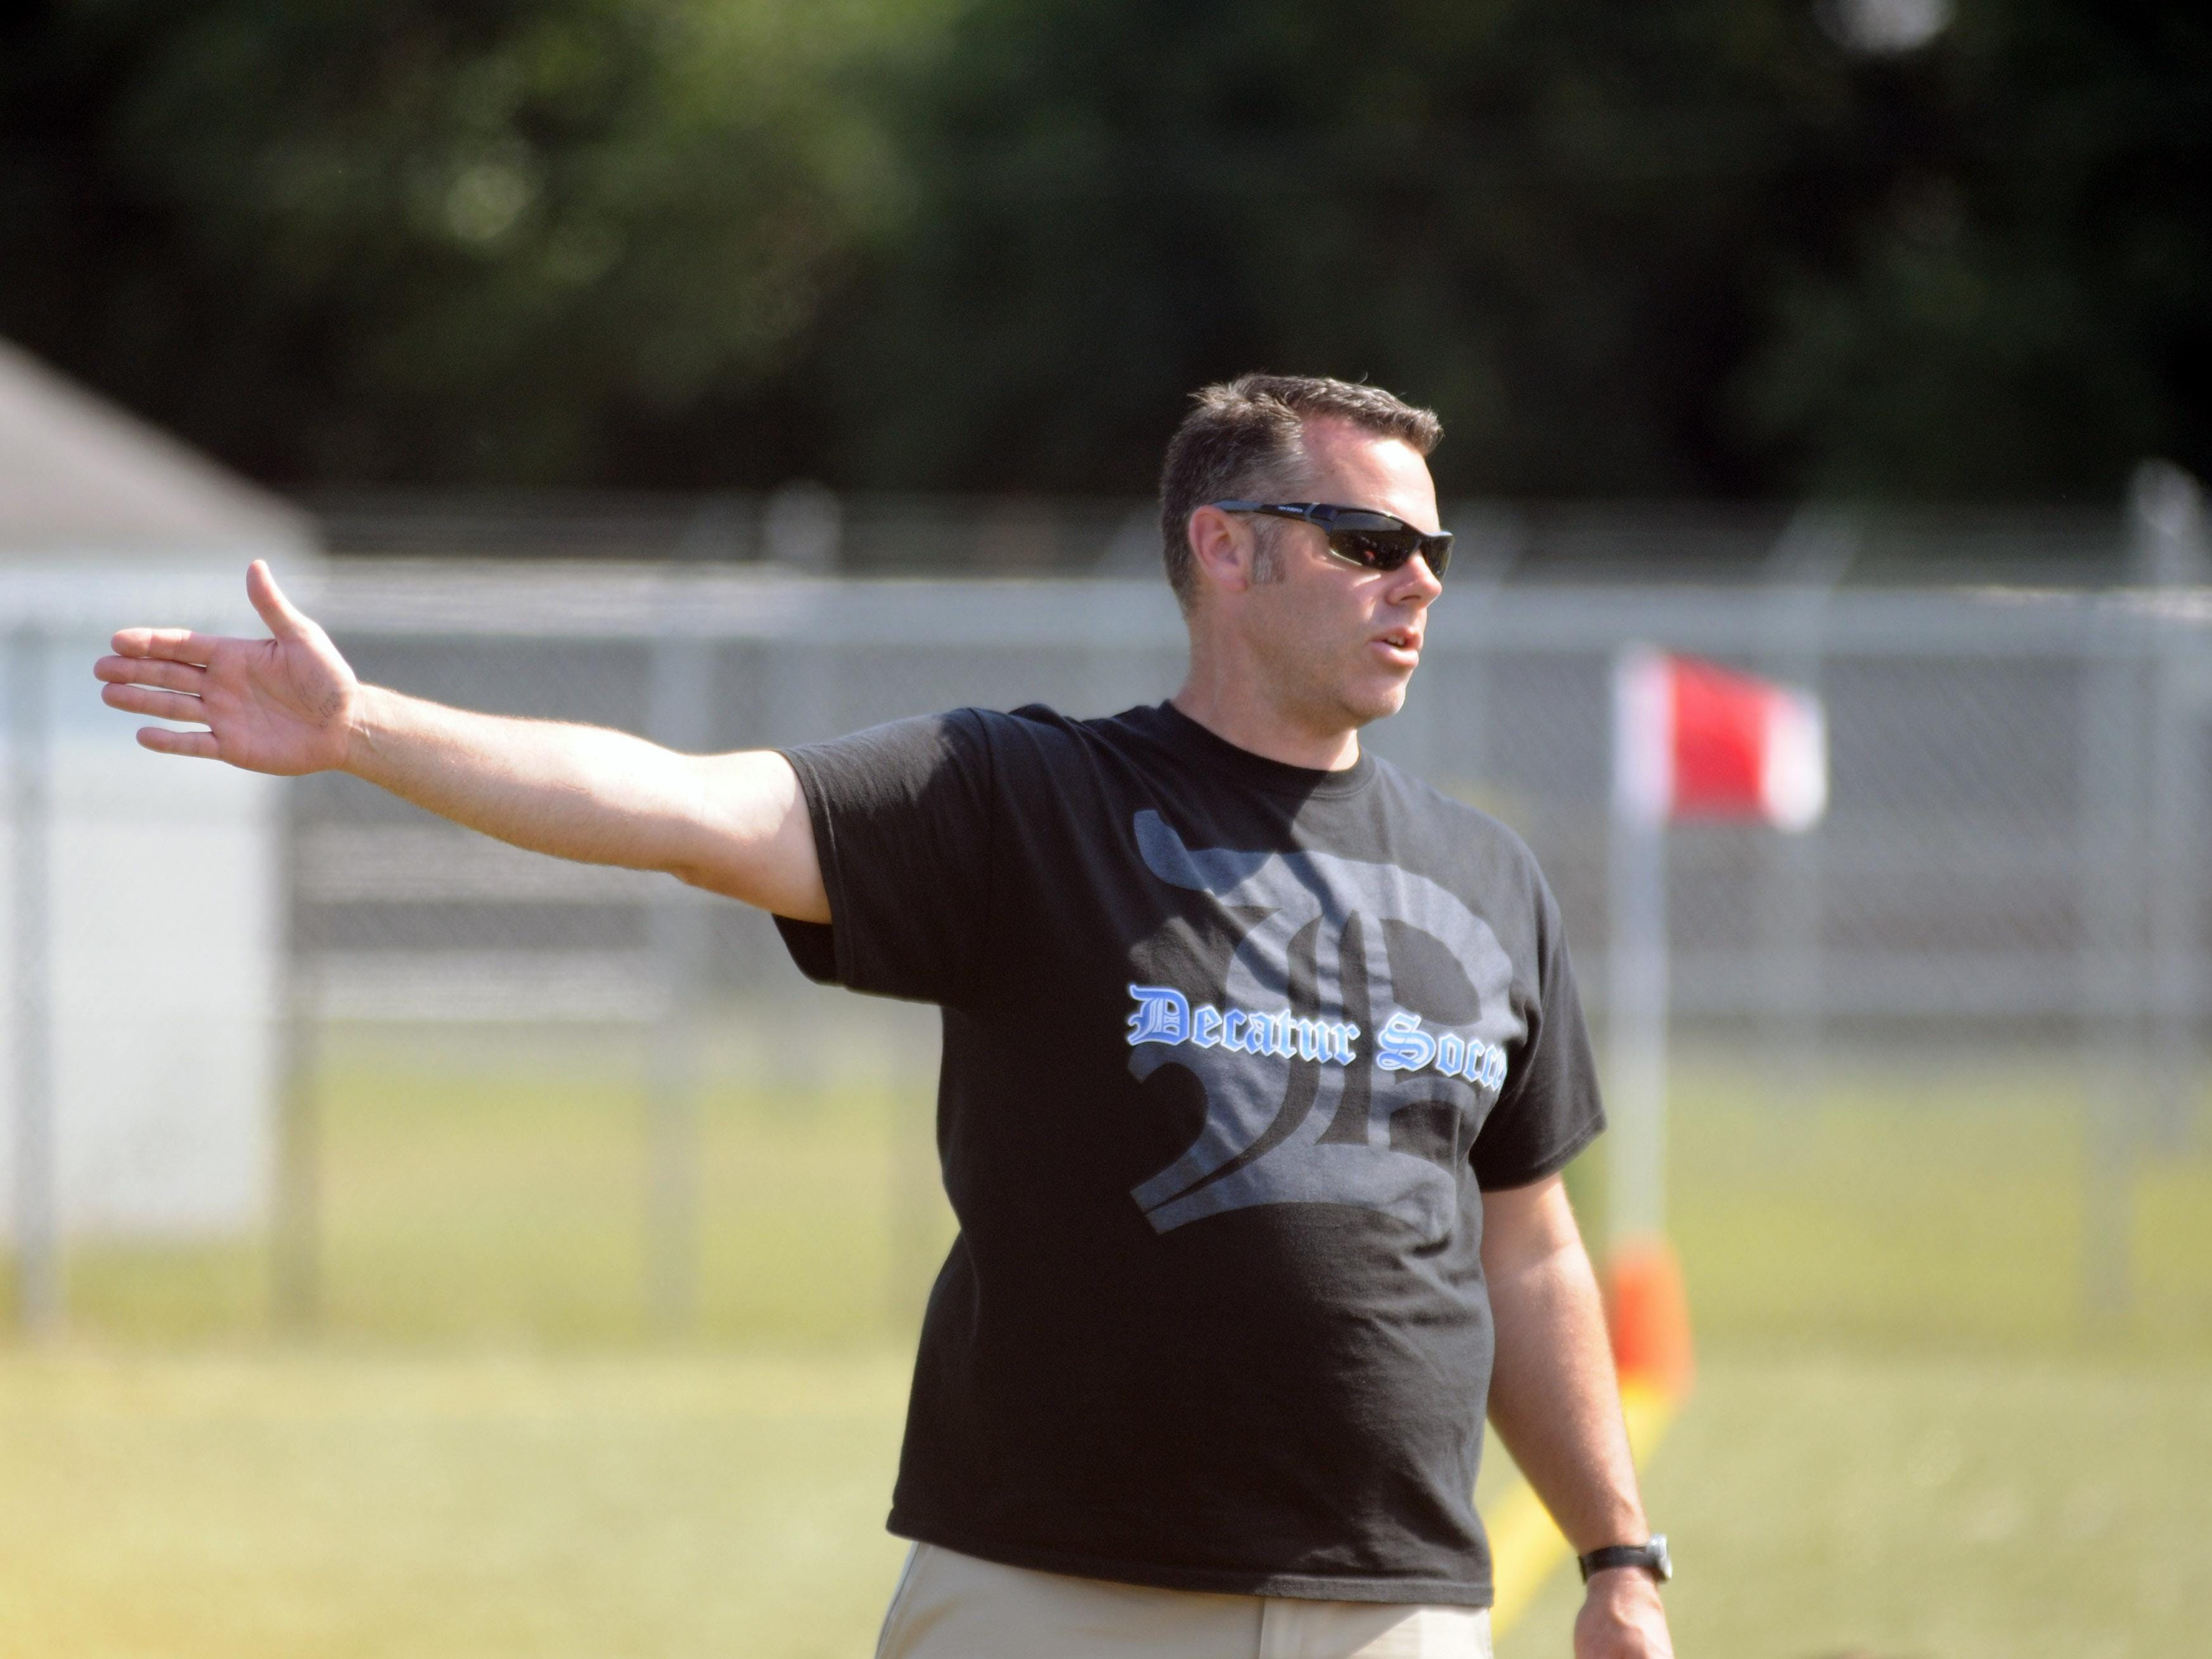 Stephen Decatur head coach Jamie Greenwood speaks with his players during the Cape Henlopen play day.